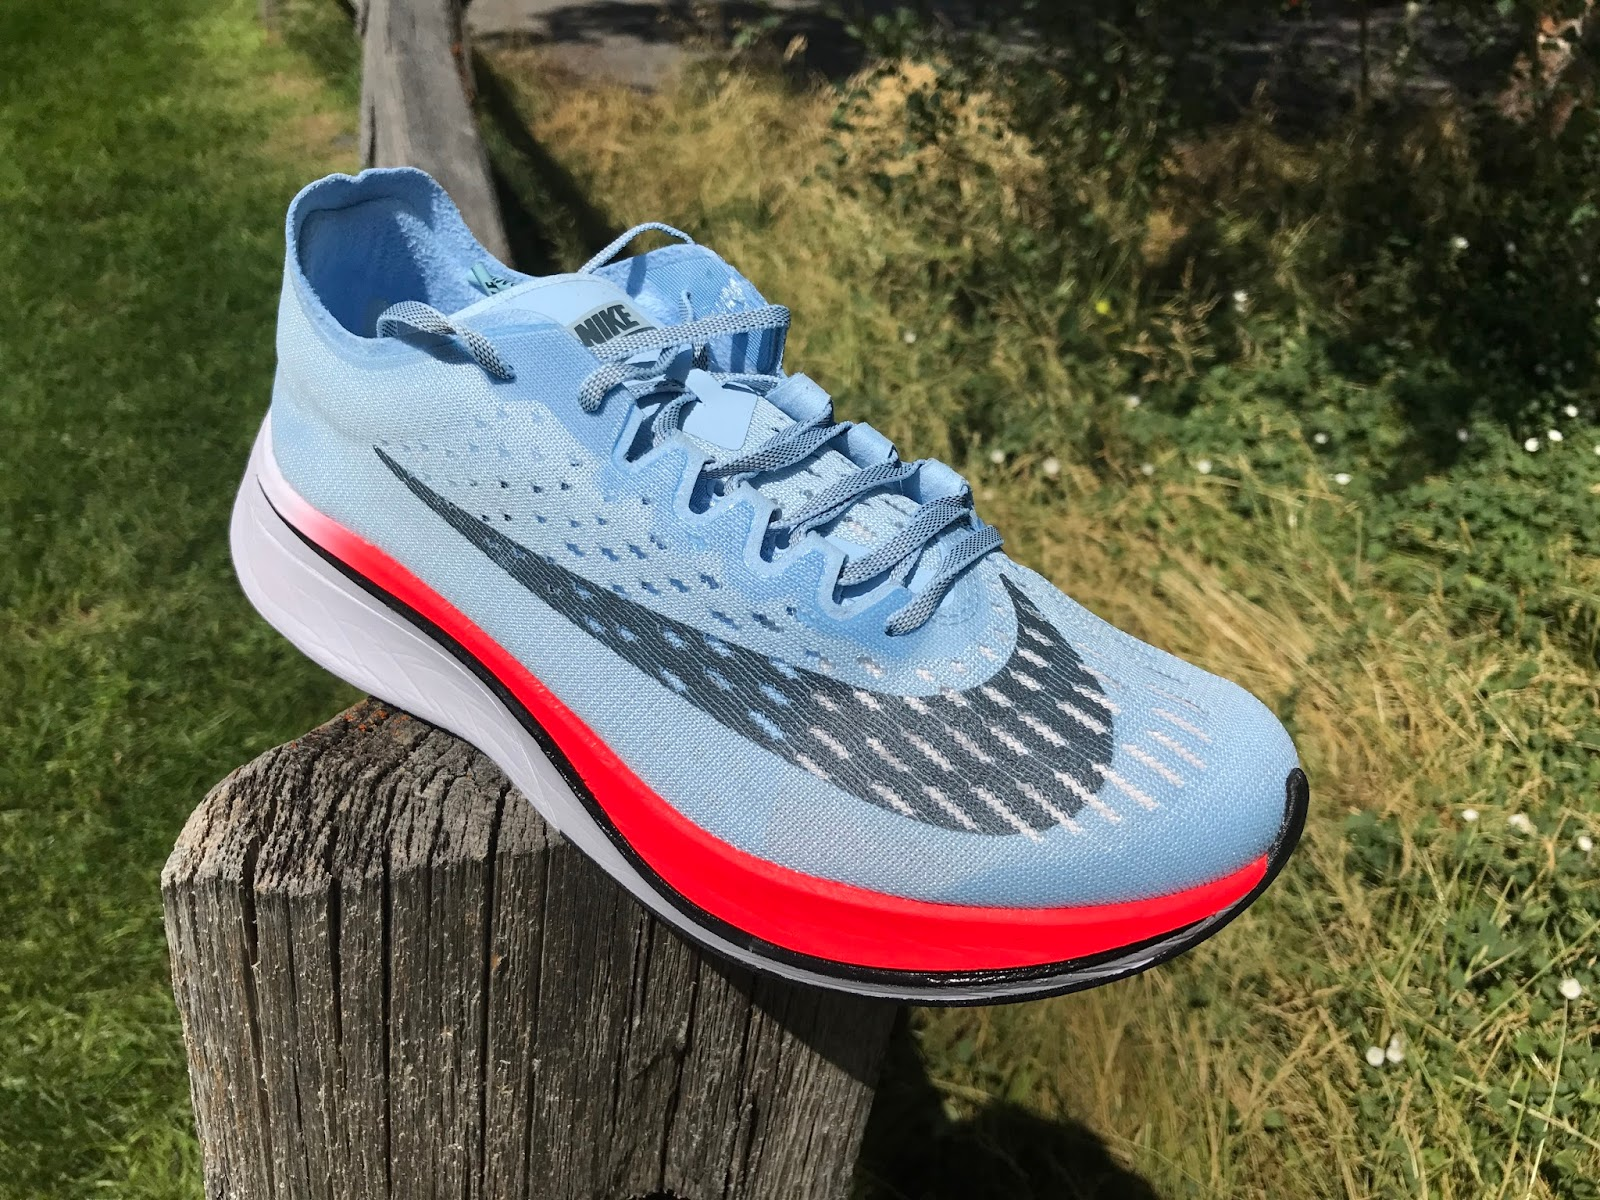 50a4fc2731d44 Road Trail Run  Nike Zoom Vaporfly 4% Detailed Breakdown Run and ...